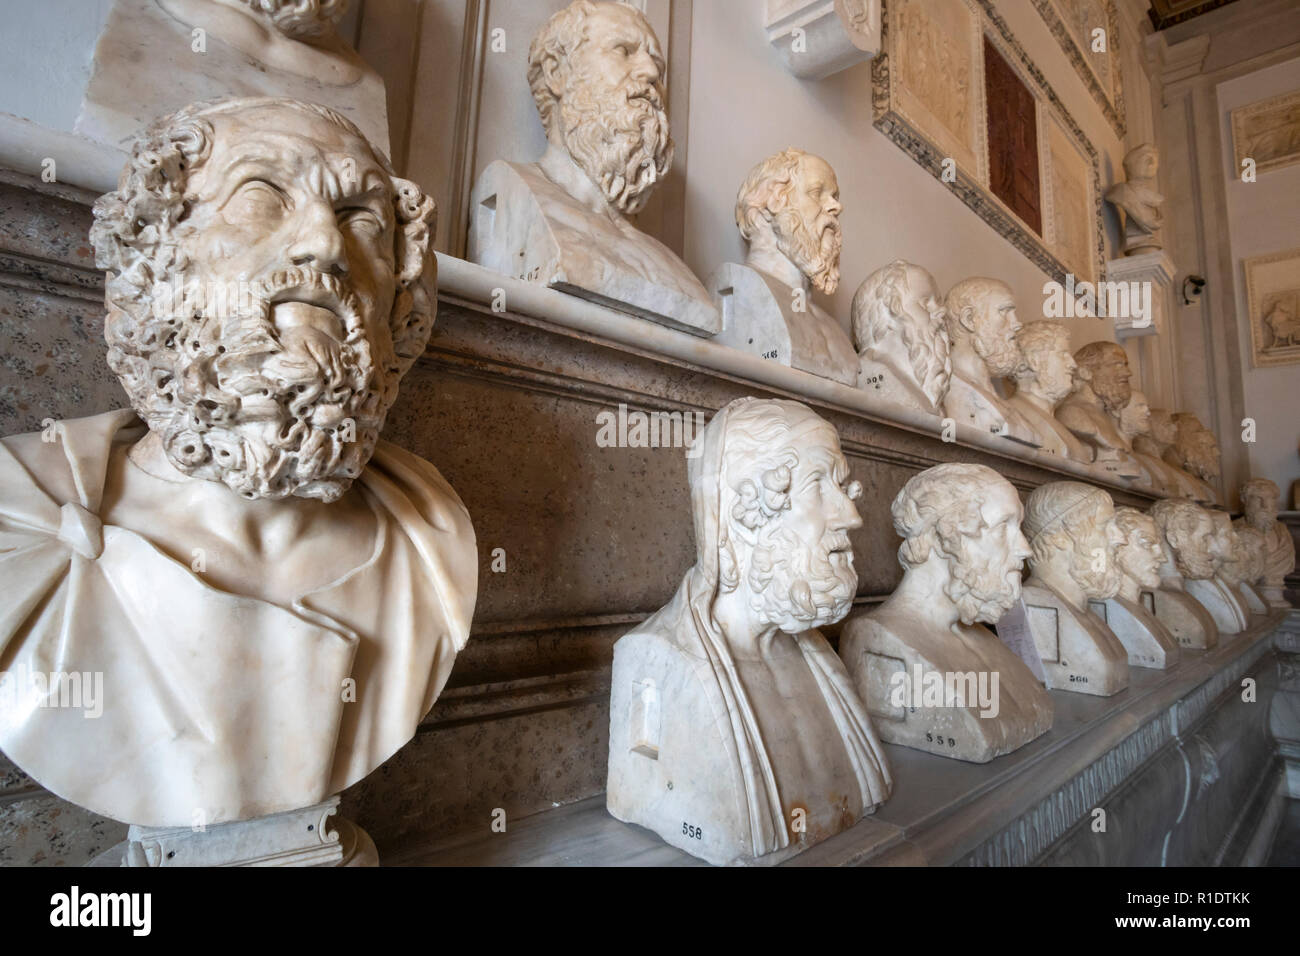 Marble busts of philosophers in the Hall of the Philosophers, in the  Capitoline Museums,  Rome, Italy. - Stock Image